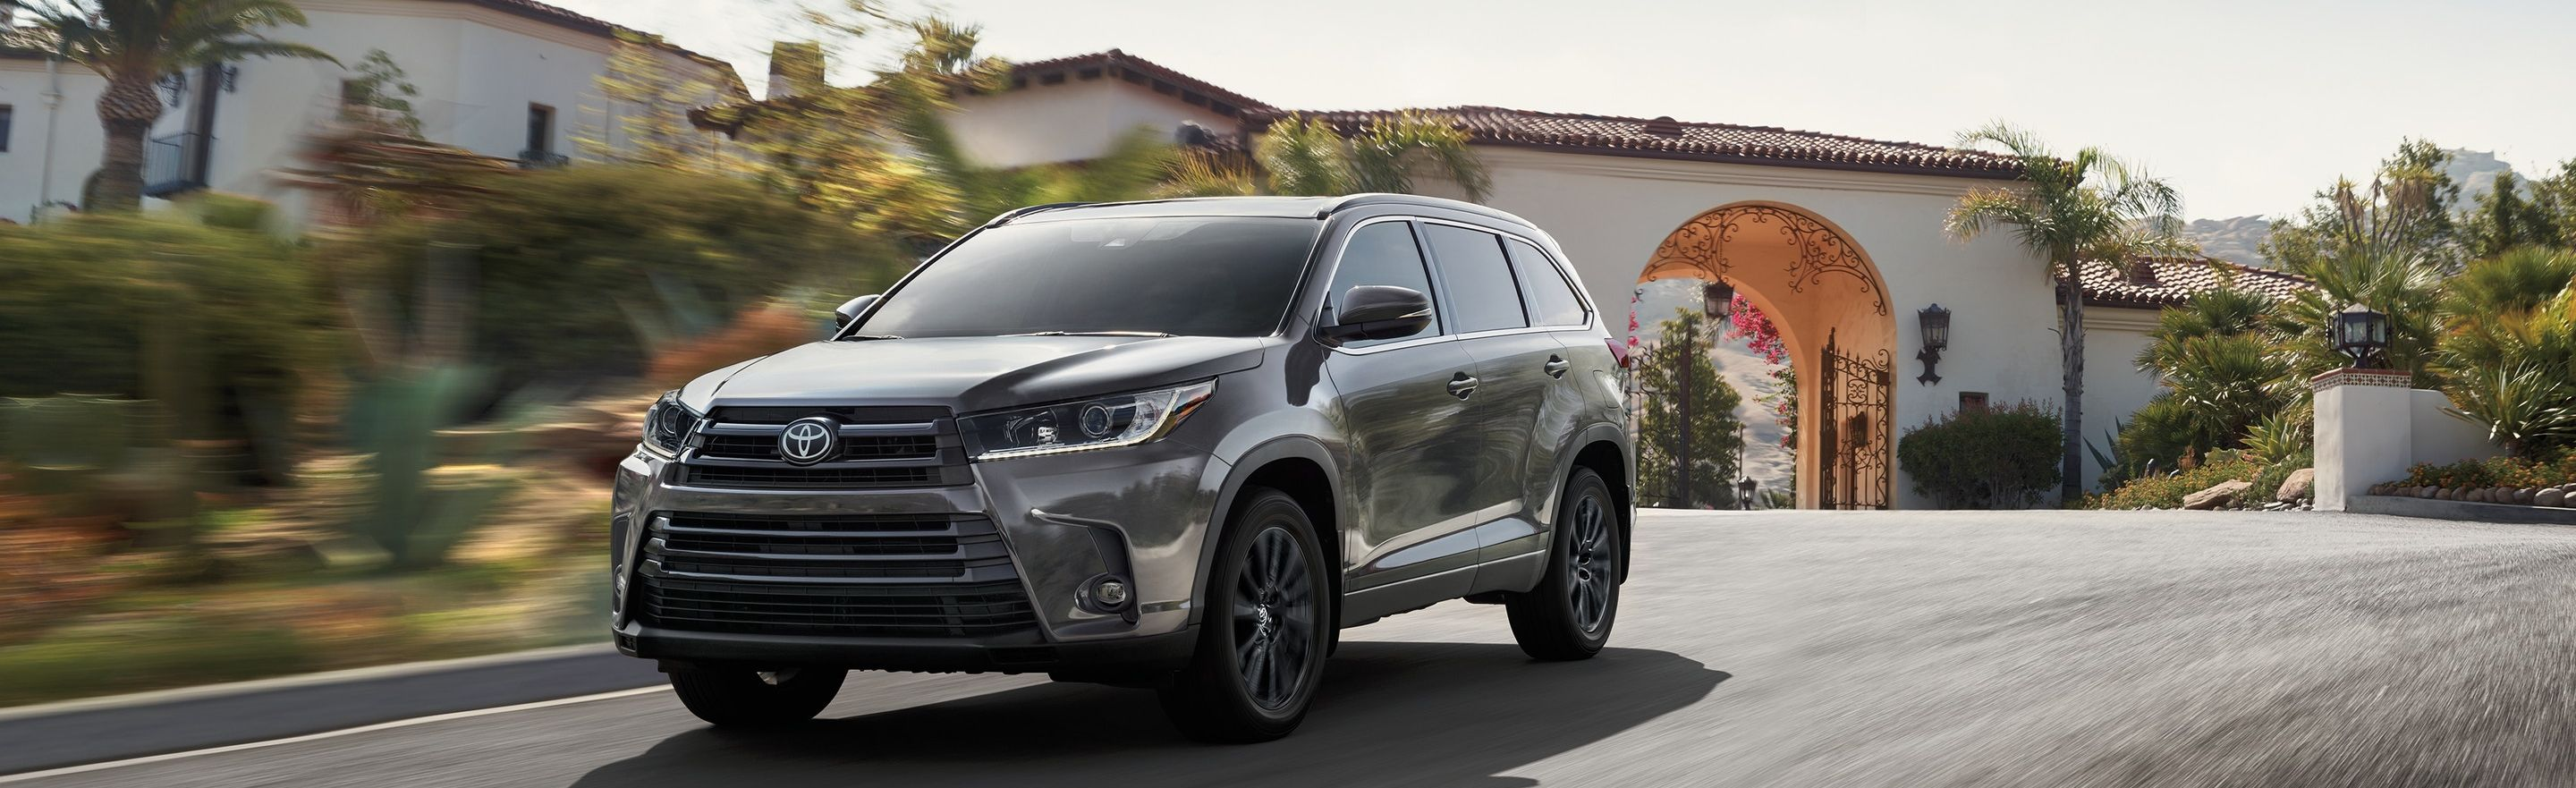 2019 New Toyota Highlander Limited Platinum V6 Awd At Toyota Of